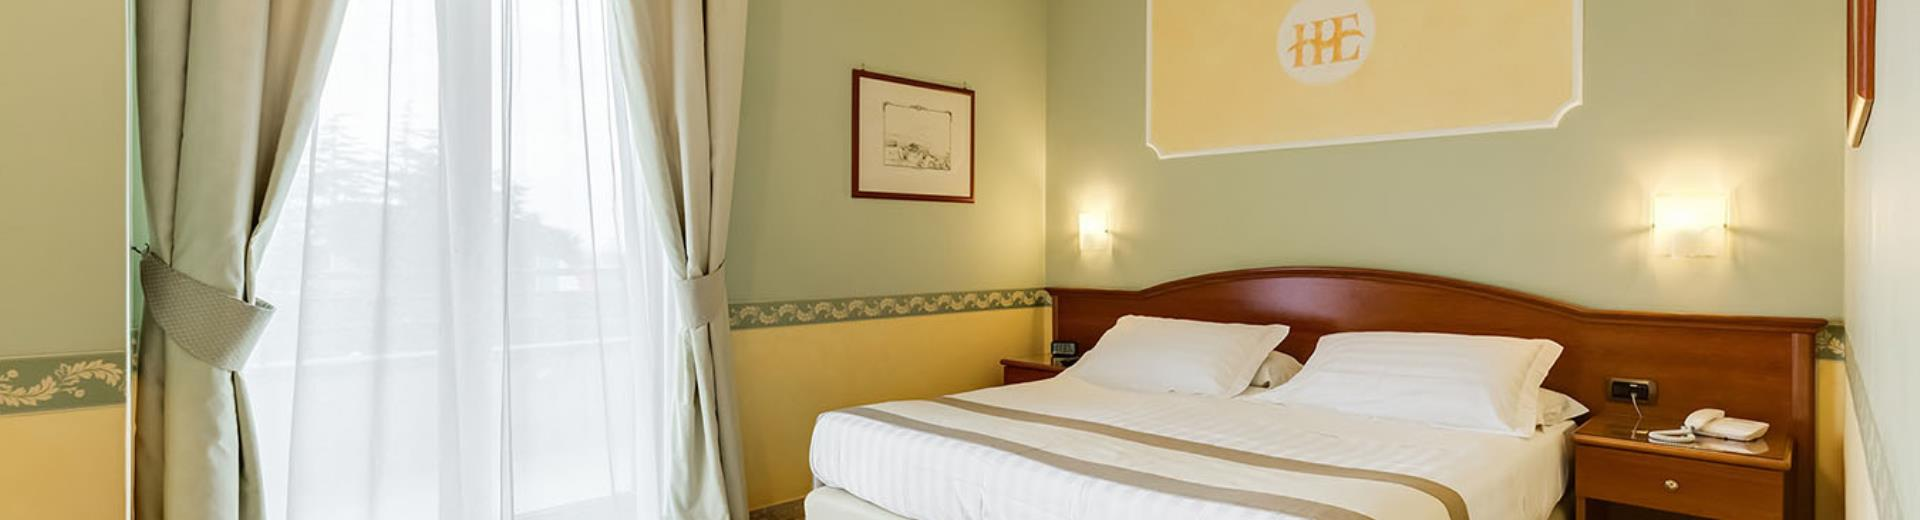 Discover the rooms of 4-star Europa Stabia Hotel in Castellammare di Stabia